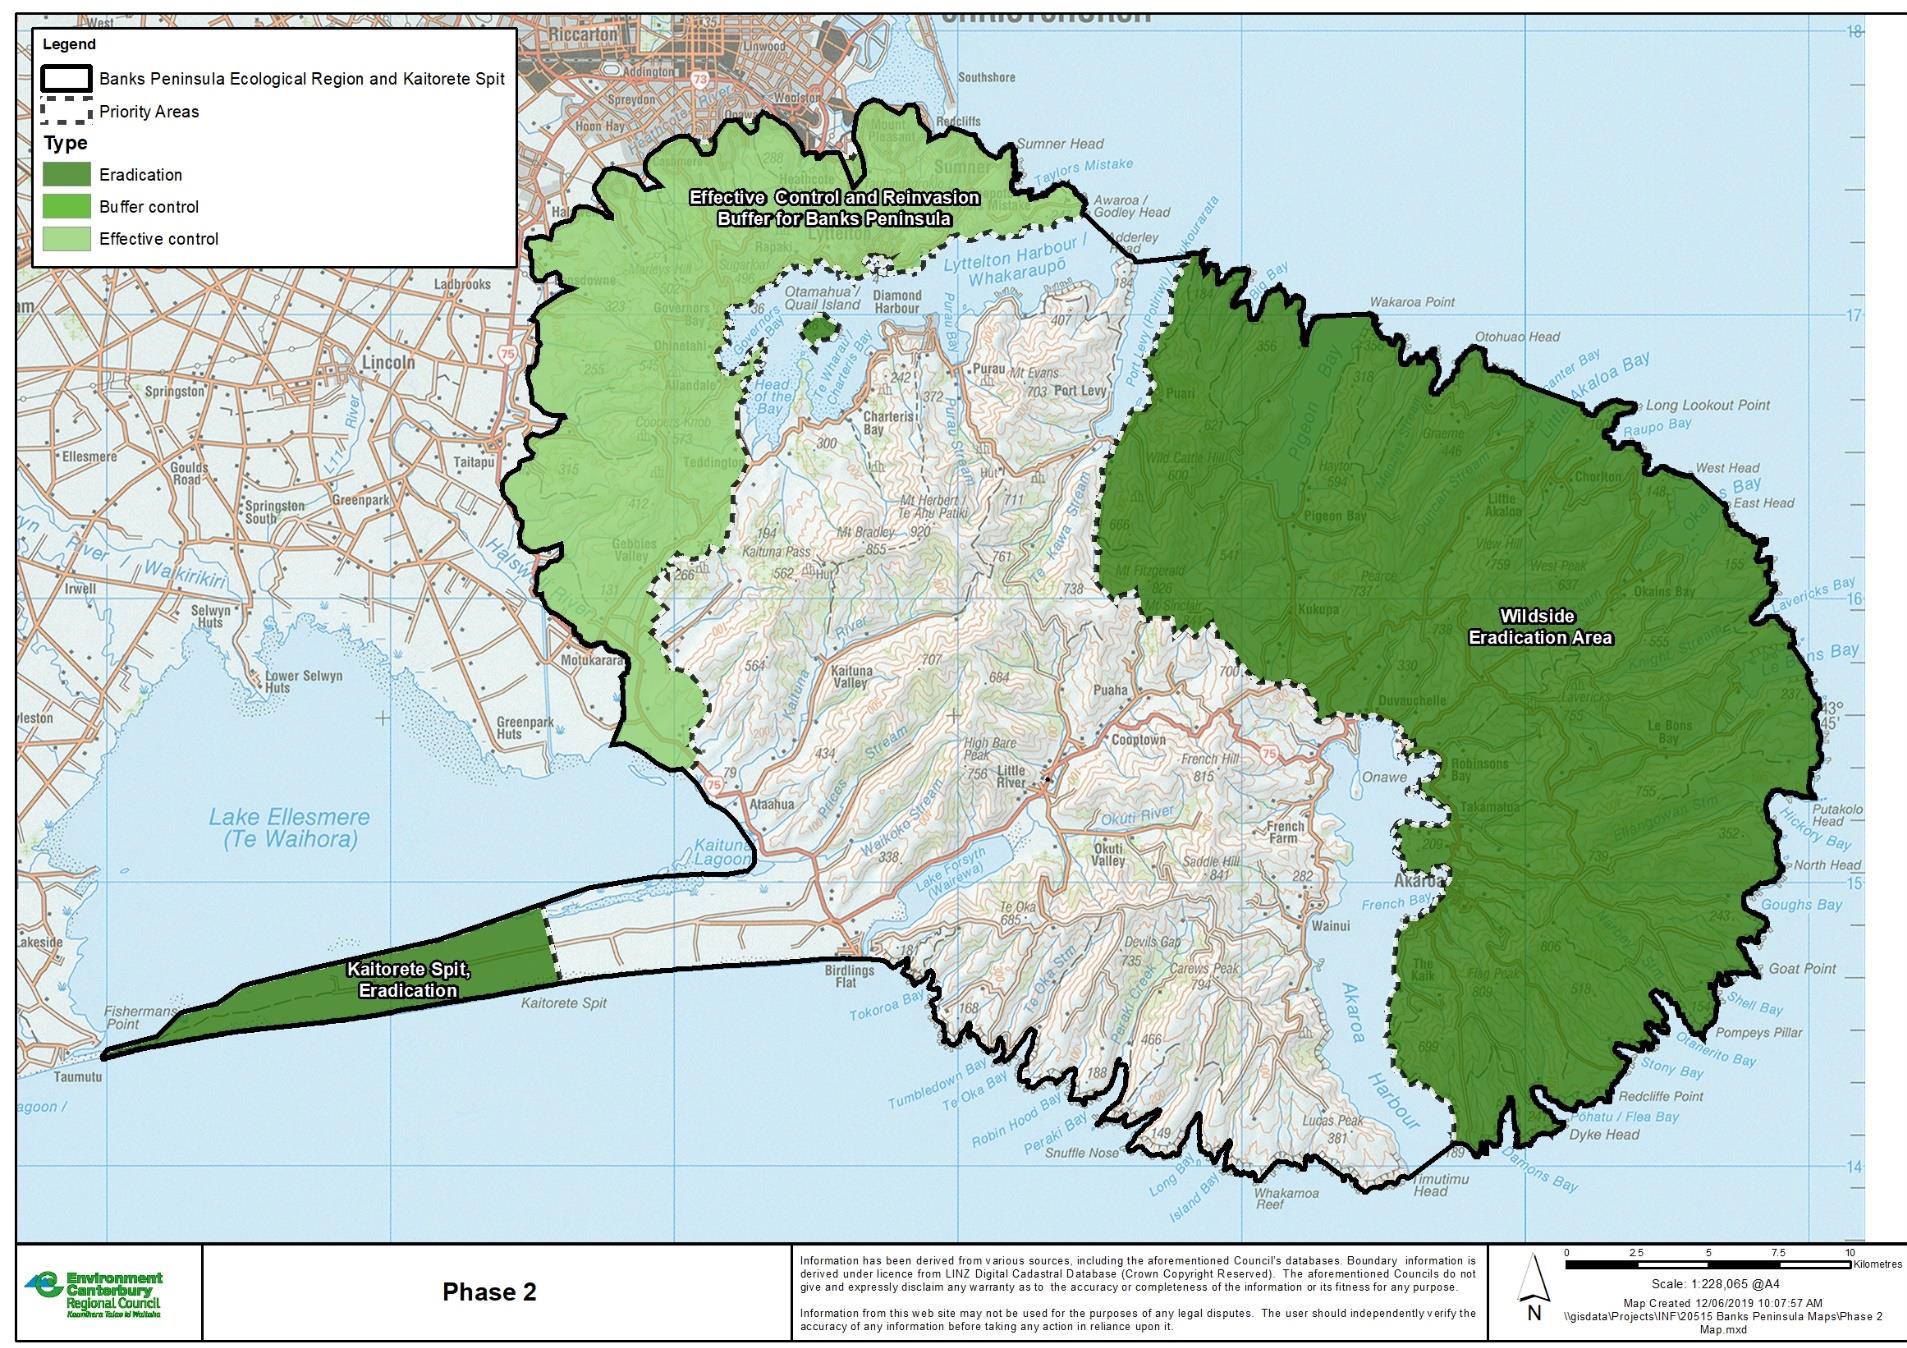 Phase 2: Wildside and Kaitorete Eradication Areas expanded.